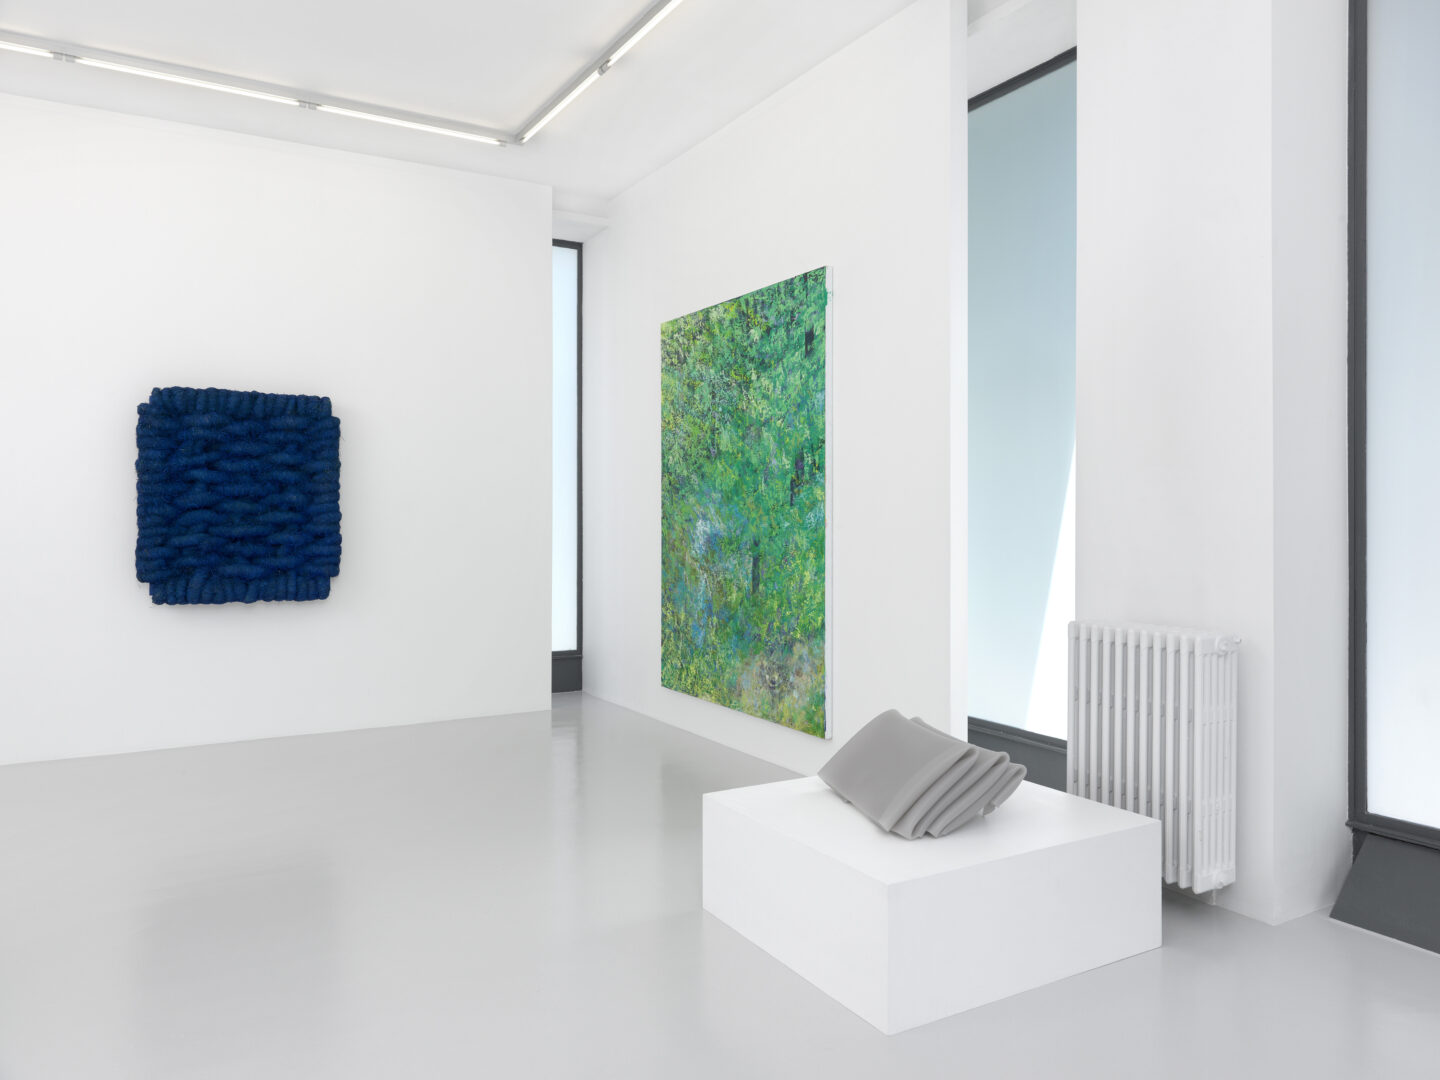 Exhibition View Groupshow by Albert Baronian «Le Choix d'Albert; view on Olaf Holzapfel, Lichtbild Leinen Blau, 2014; Mitja Tušek, Without Turkey, 2015-2016 and Olaf Holzapfel, Abstand (2), 2011» at Xippas, Geneva / Photo: Annik Wetter